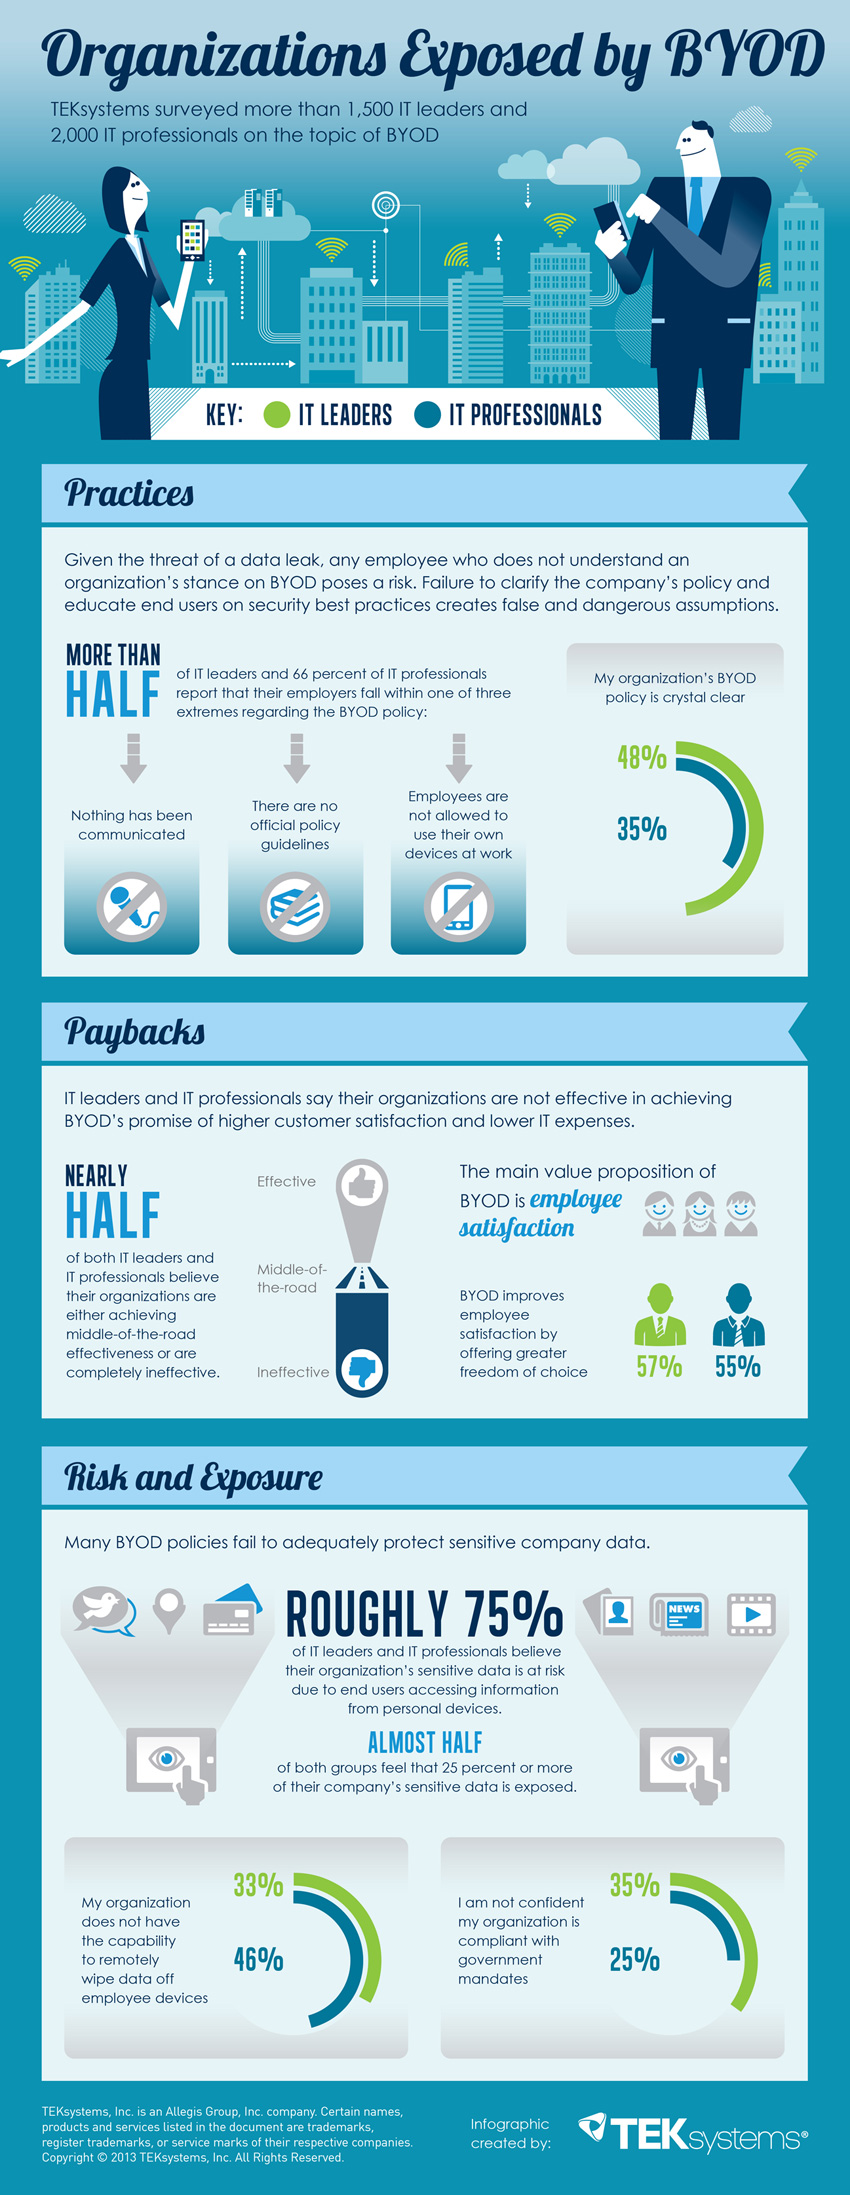 Organizations Exposed by BYOD